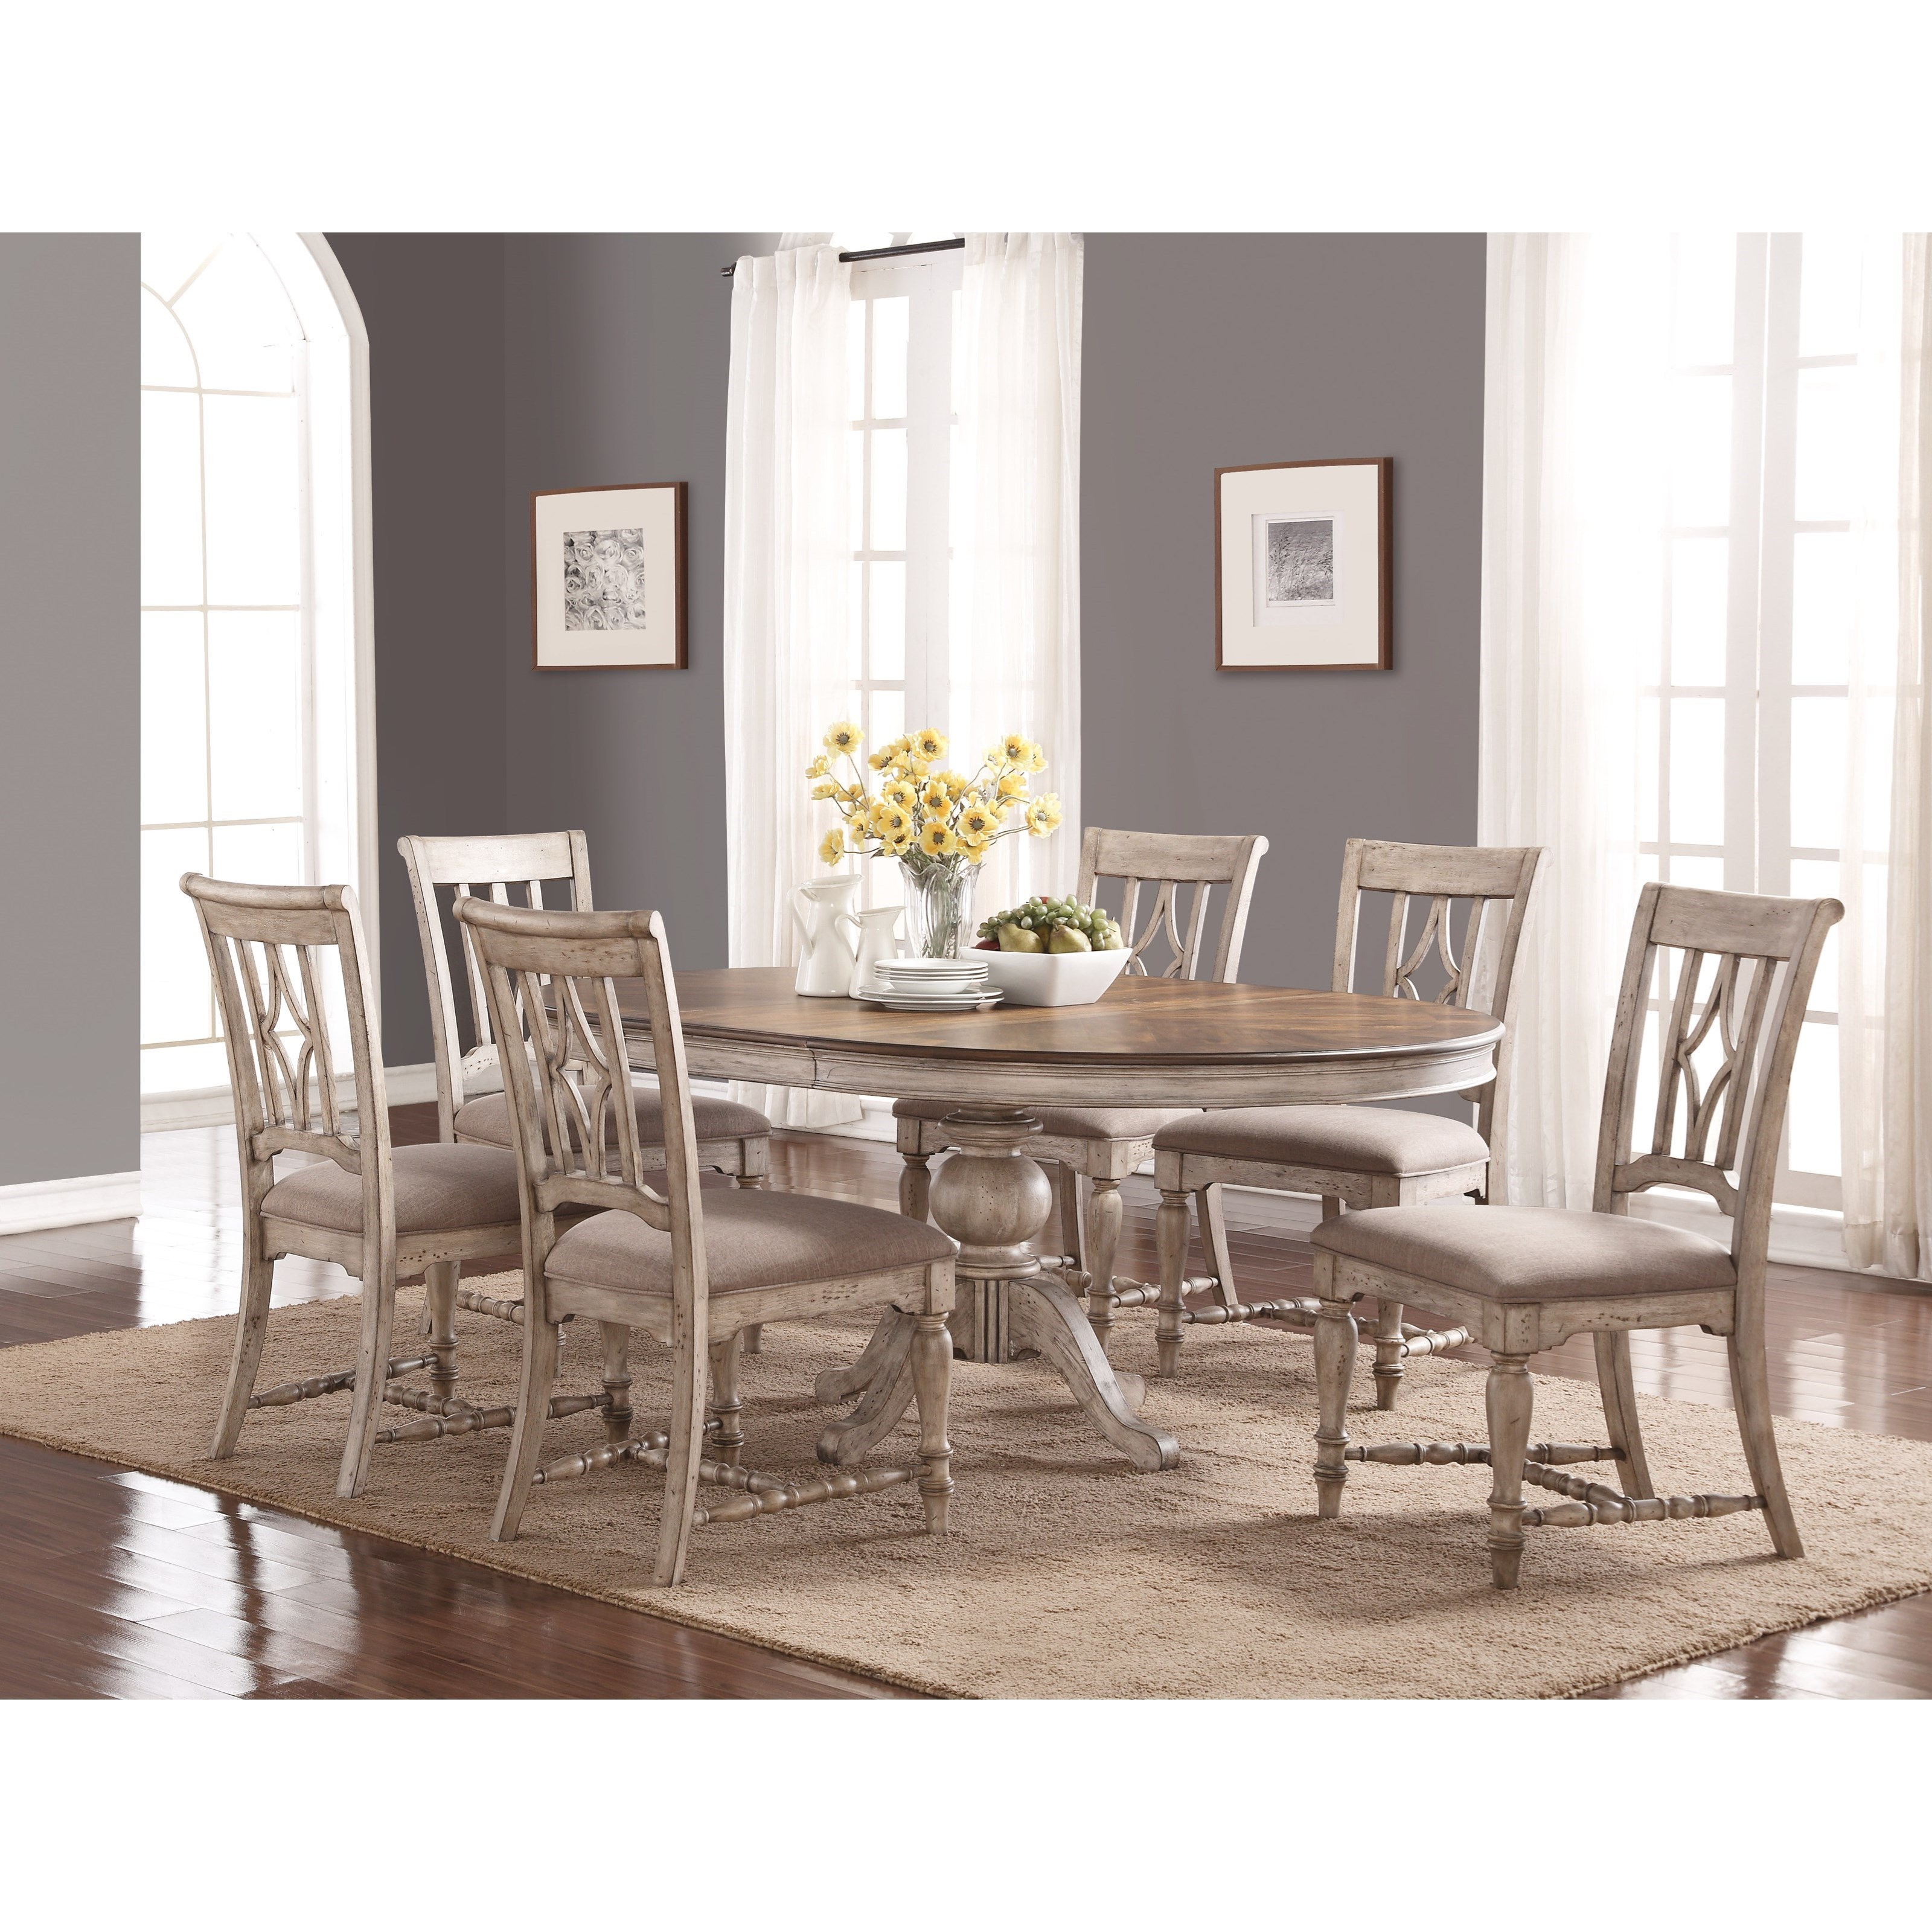 Relaxed Vintage Table and Chair Set with Pedestal Table